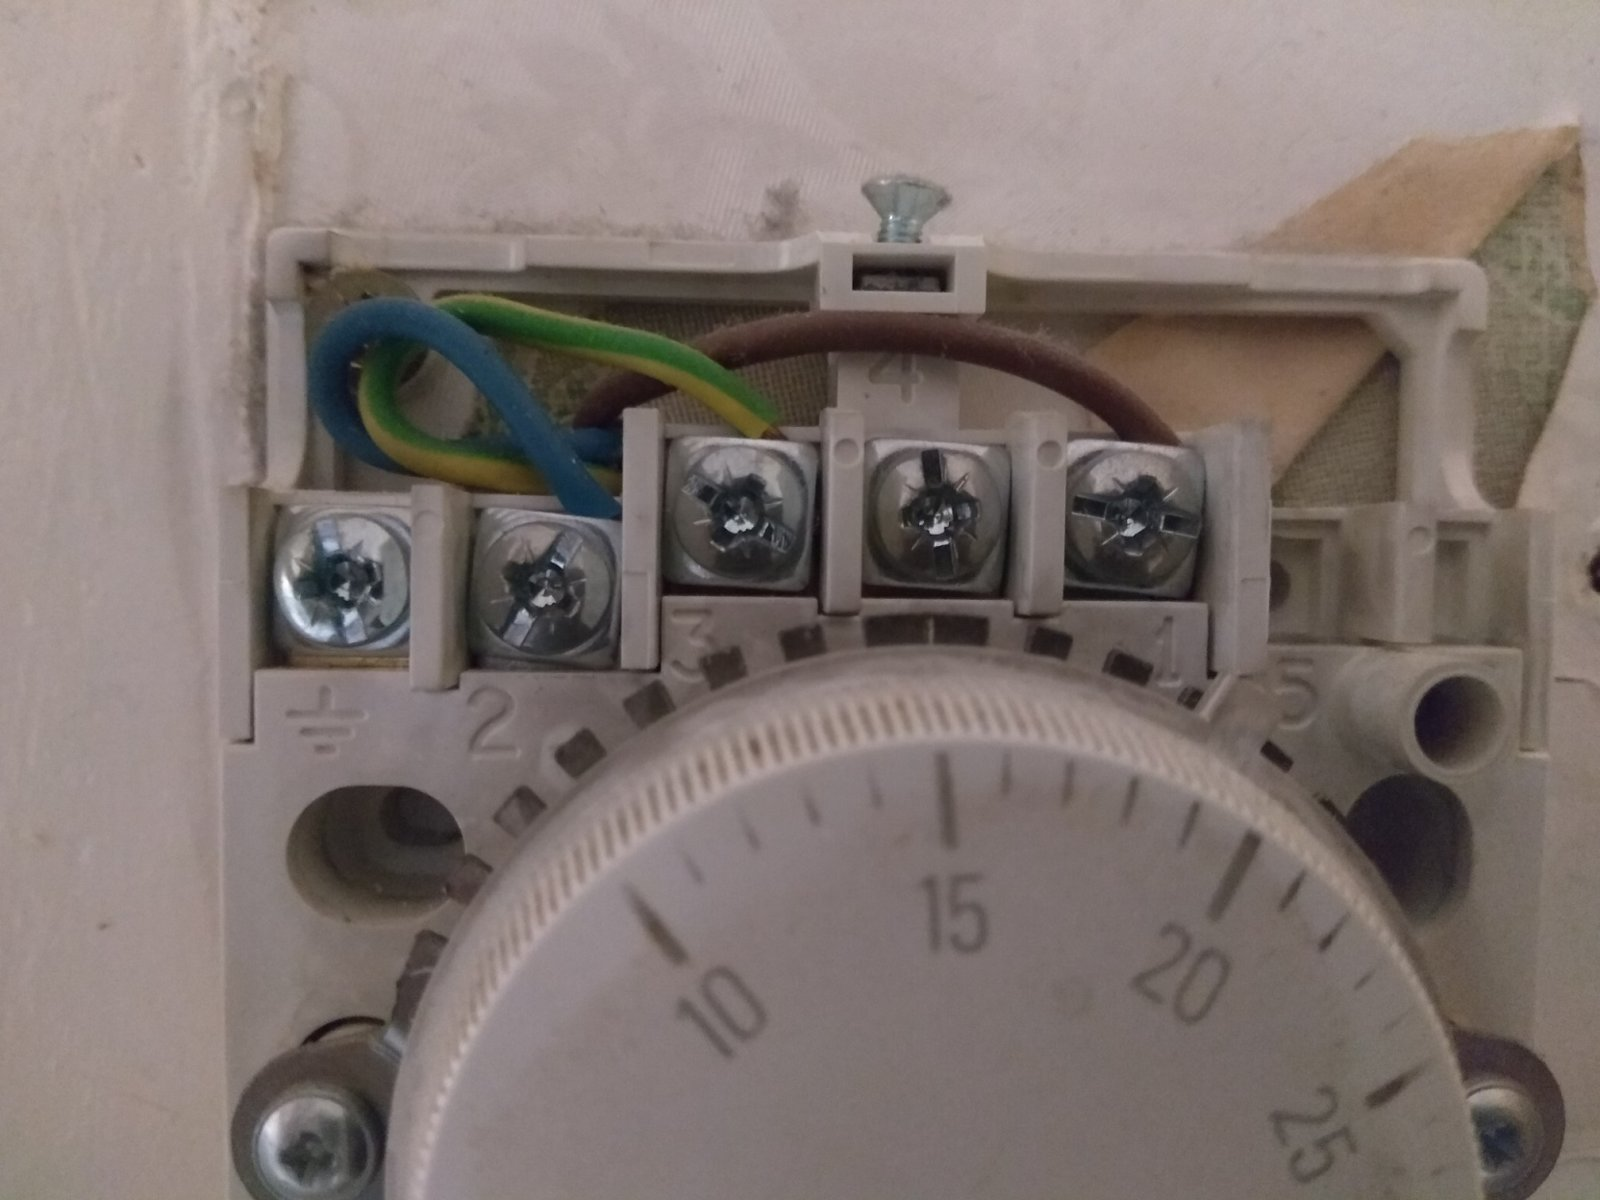 Problems after swapping T6360B for TP5000si thermostat | DIYnot Forums